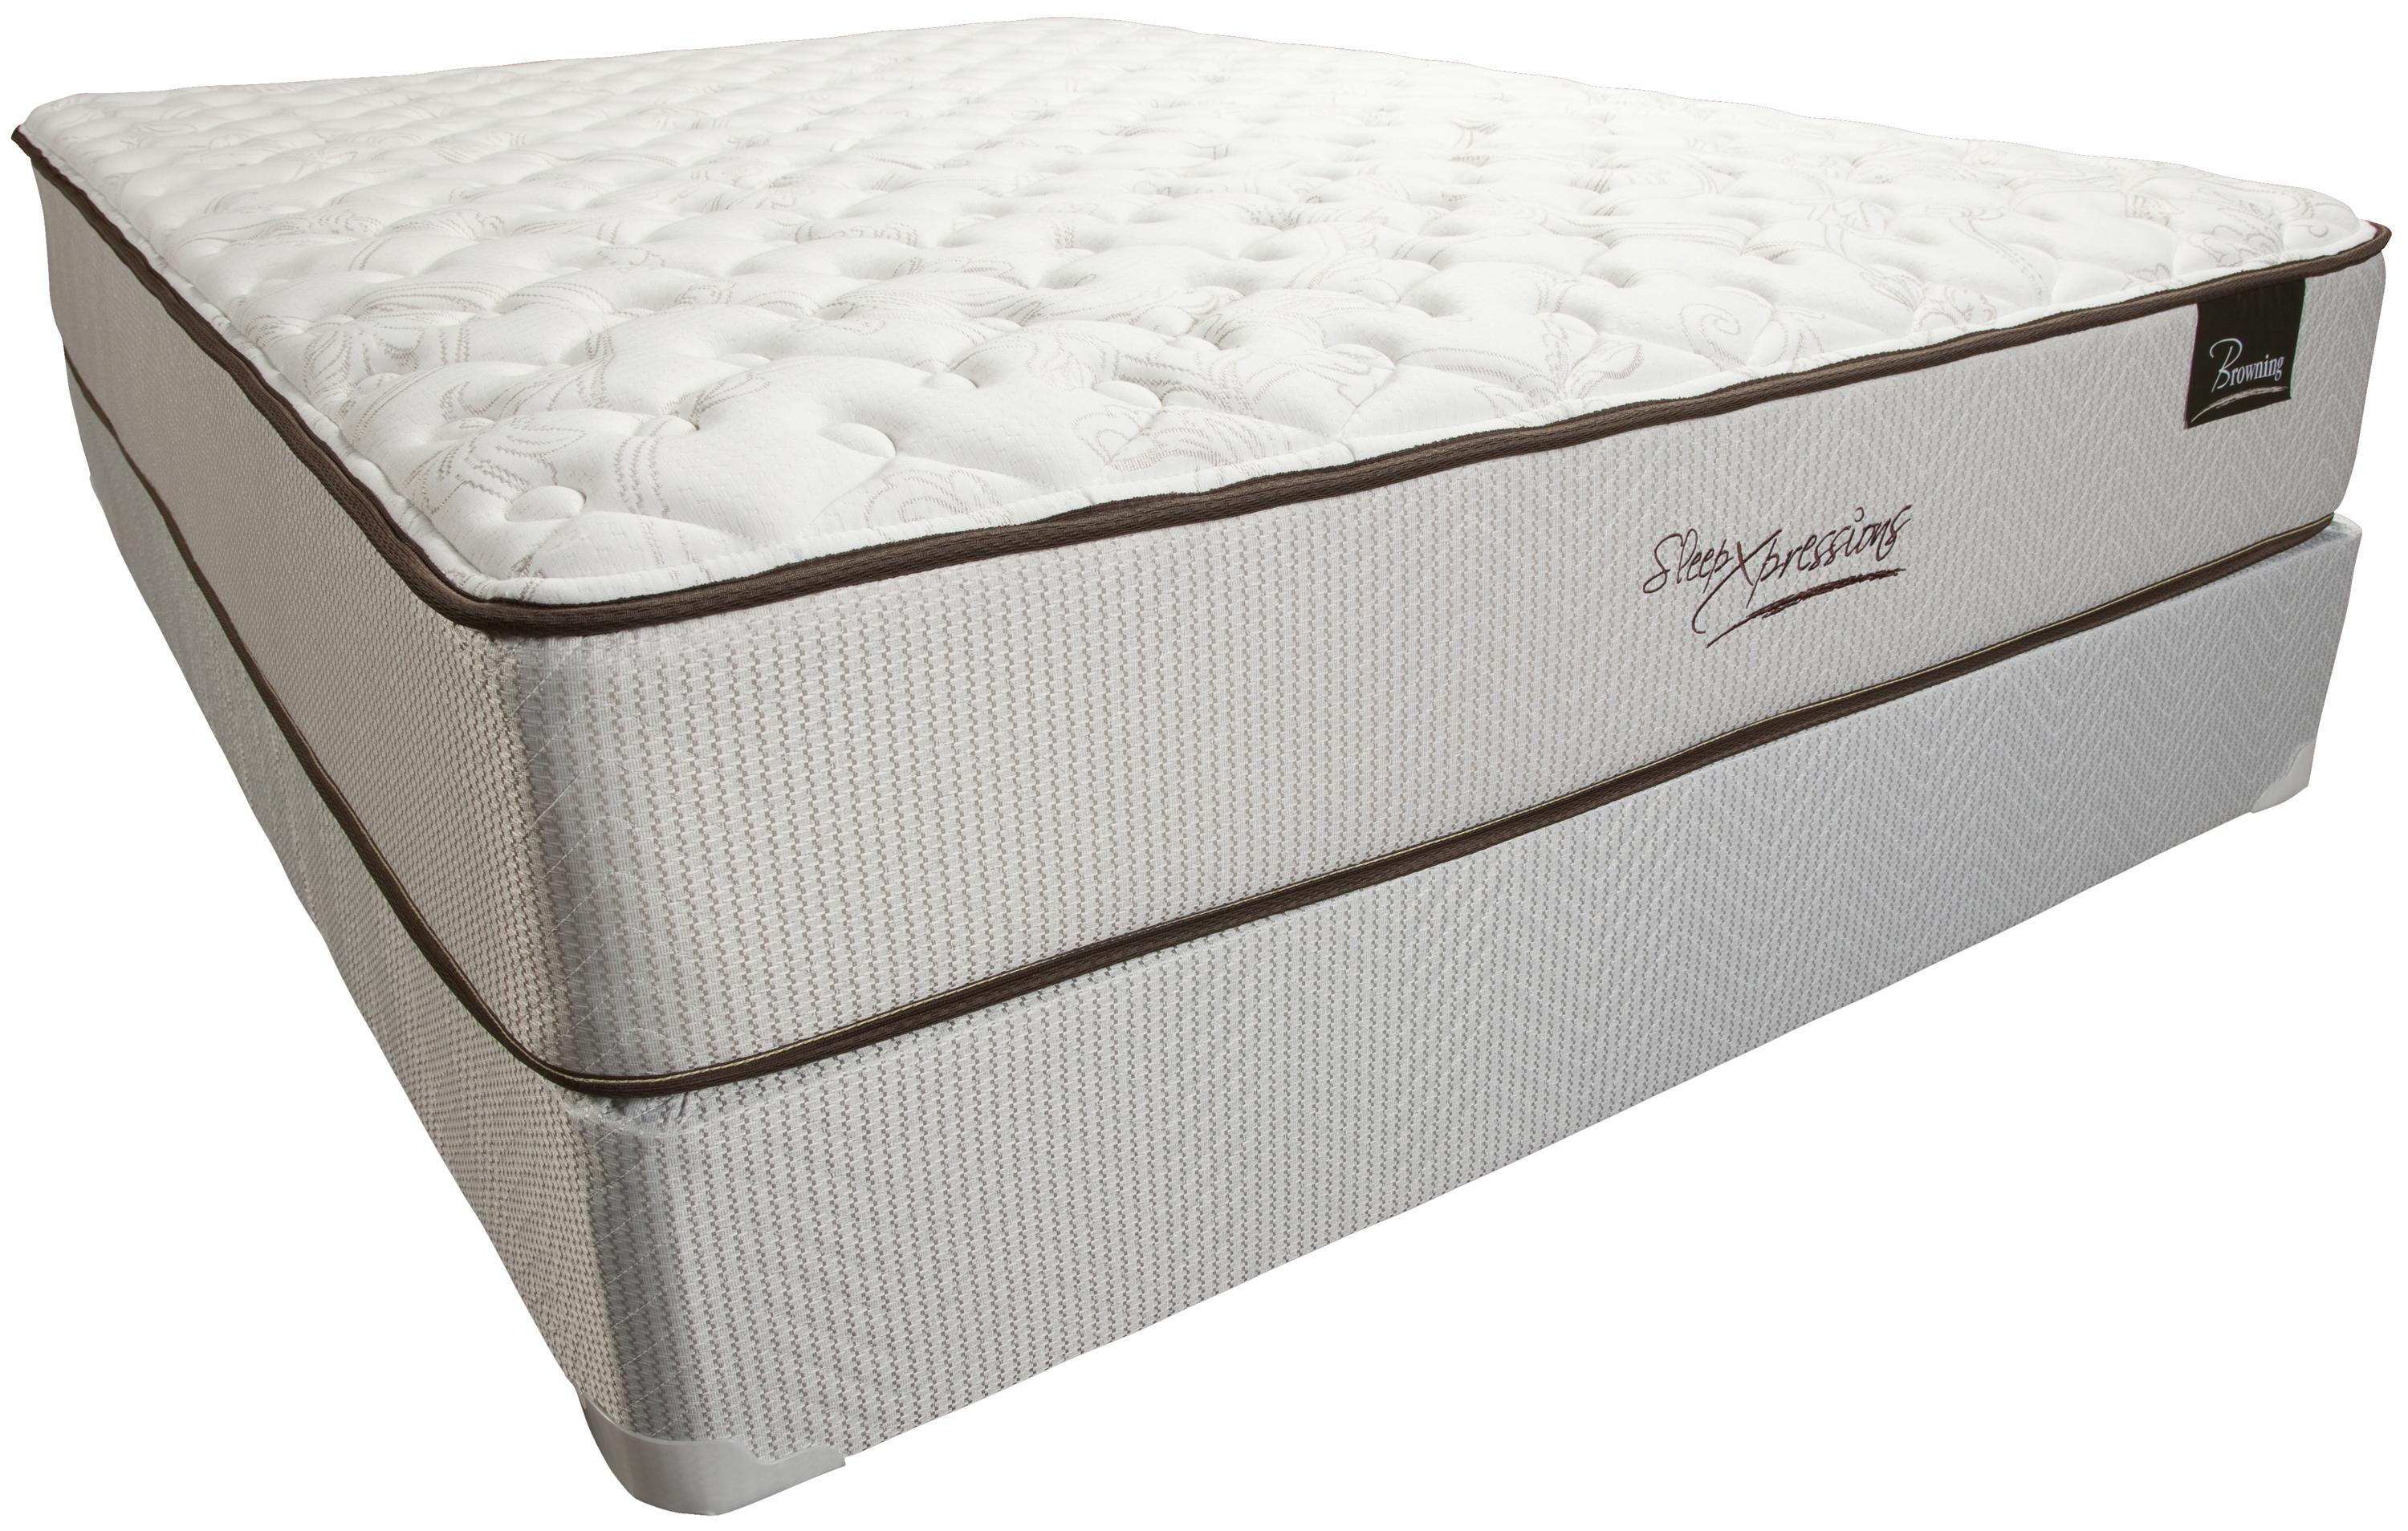 Sleep XPressions Browning Full Firm Mattress Set by Southerland Bedding Co. at Wilcox Furniture